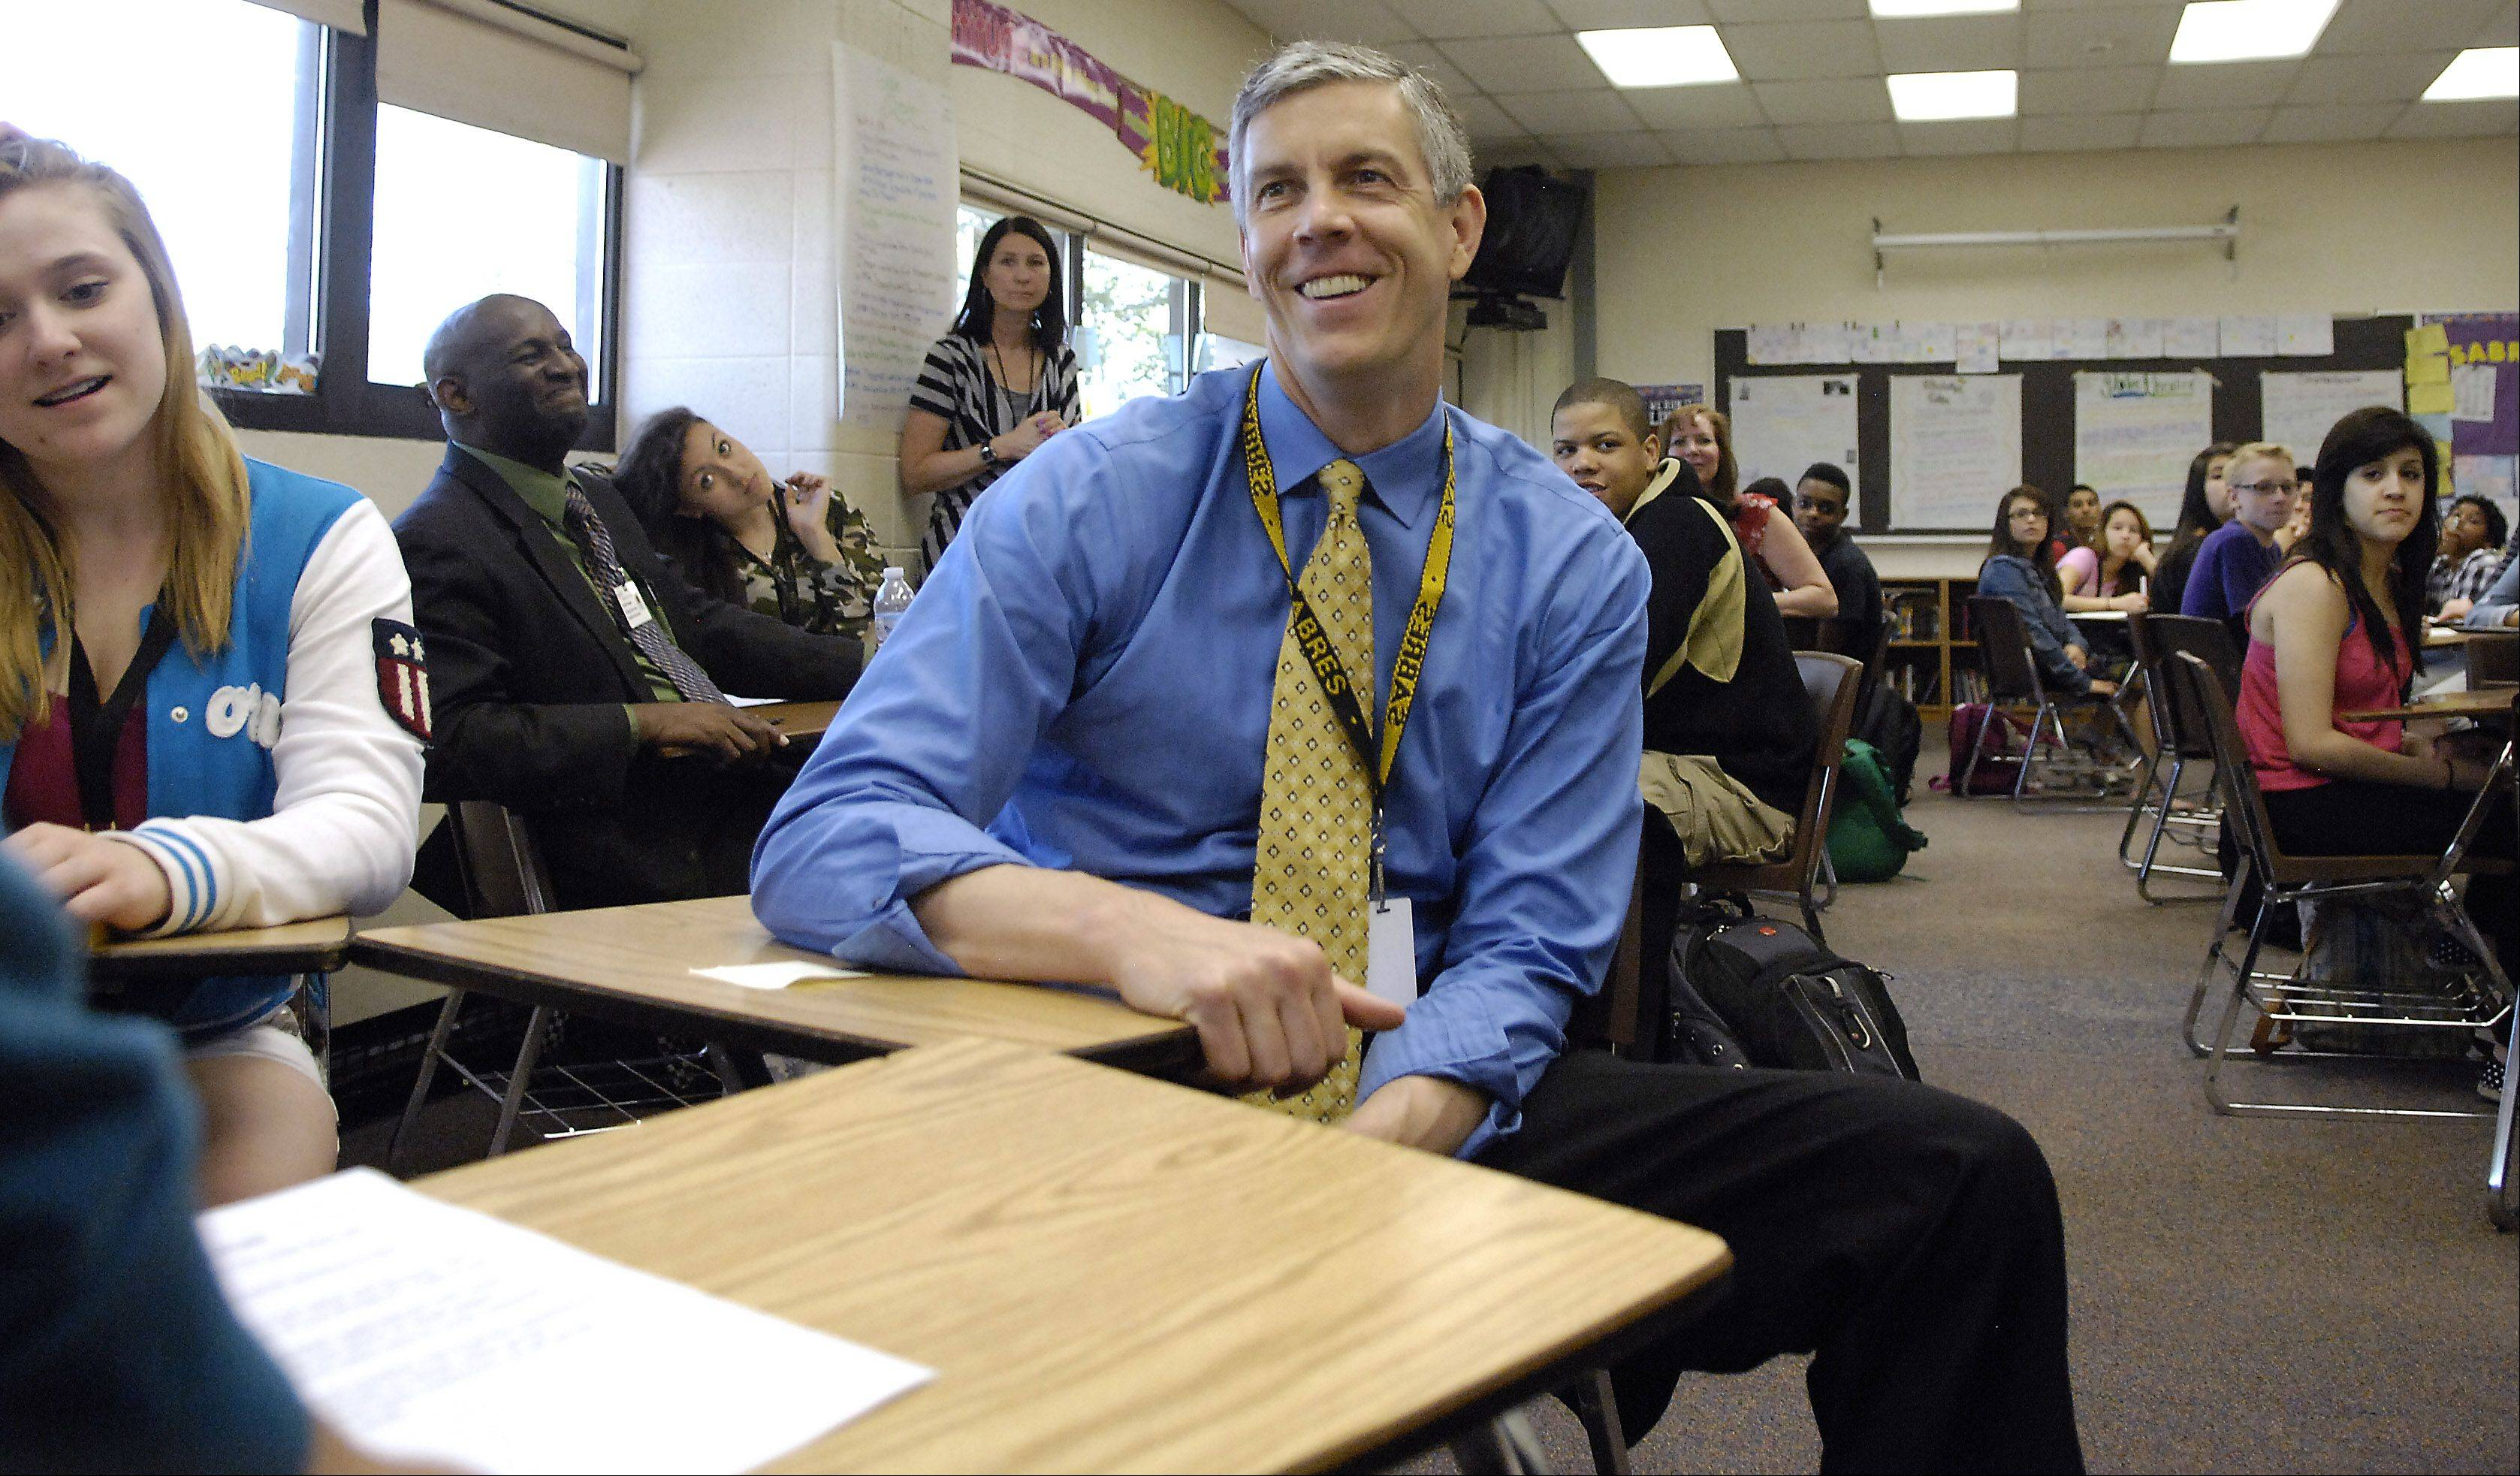 Secretary of Education Arne Duncan visiting Wheeling Thursday